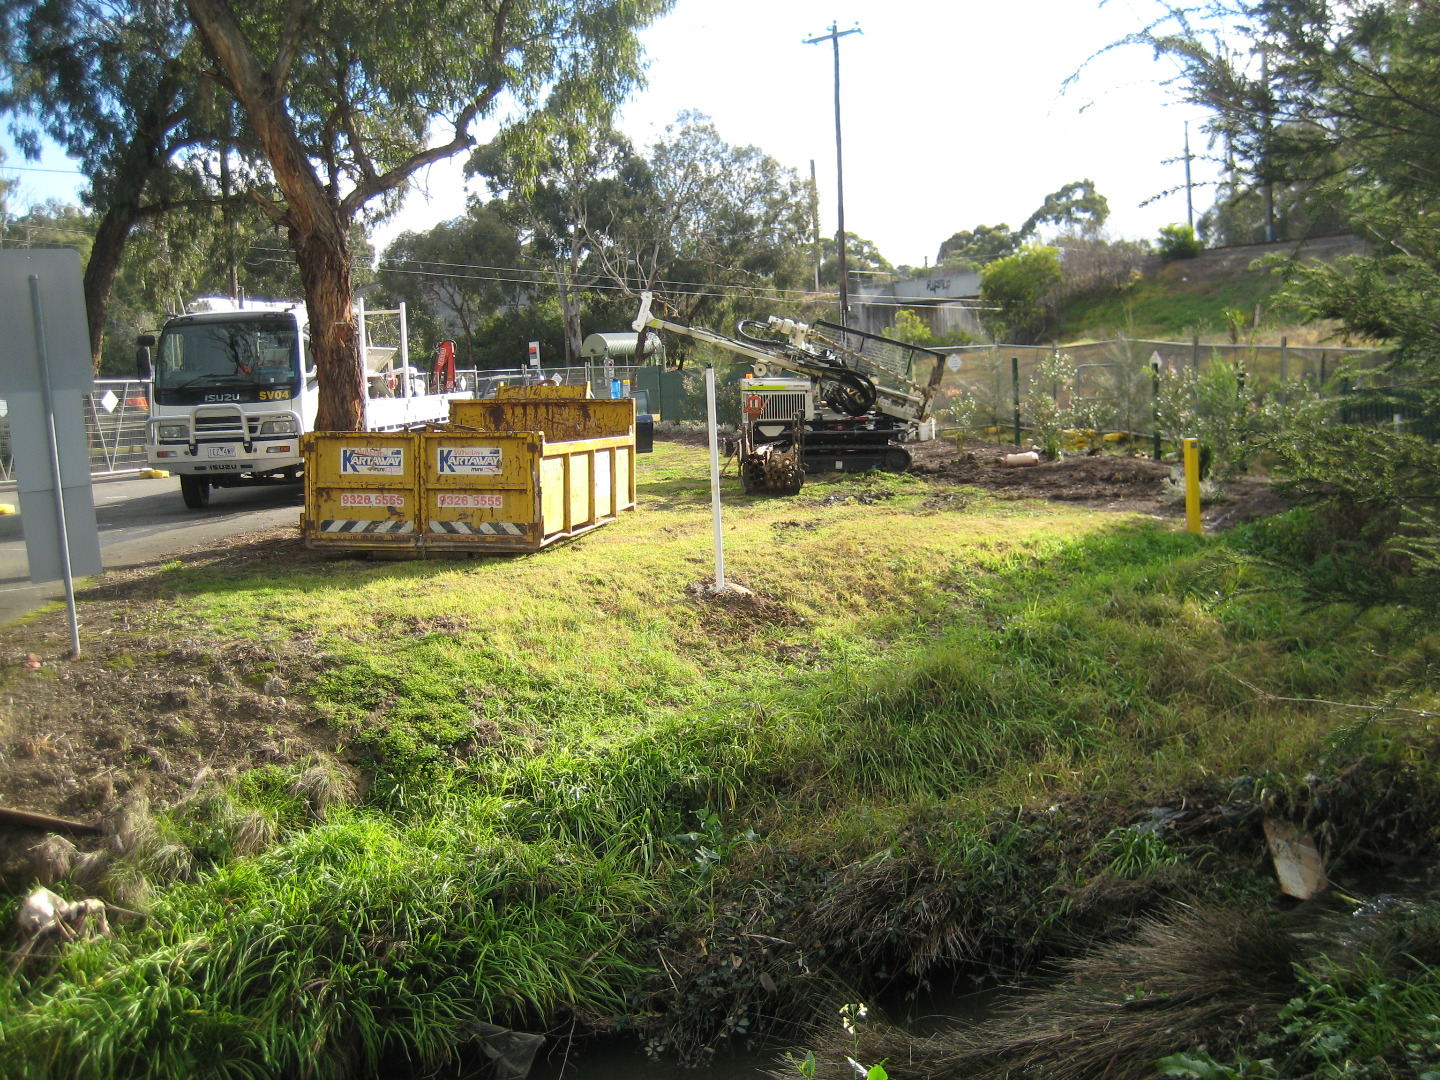 Landscaping being done near YDI 838